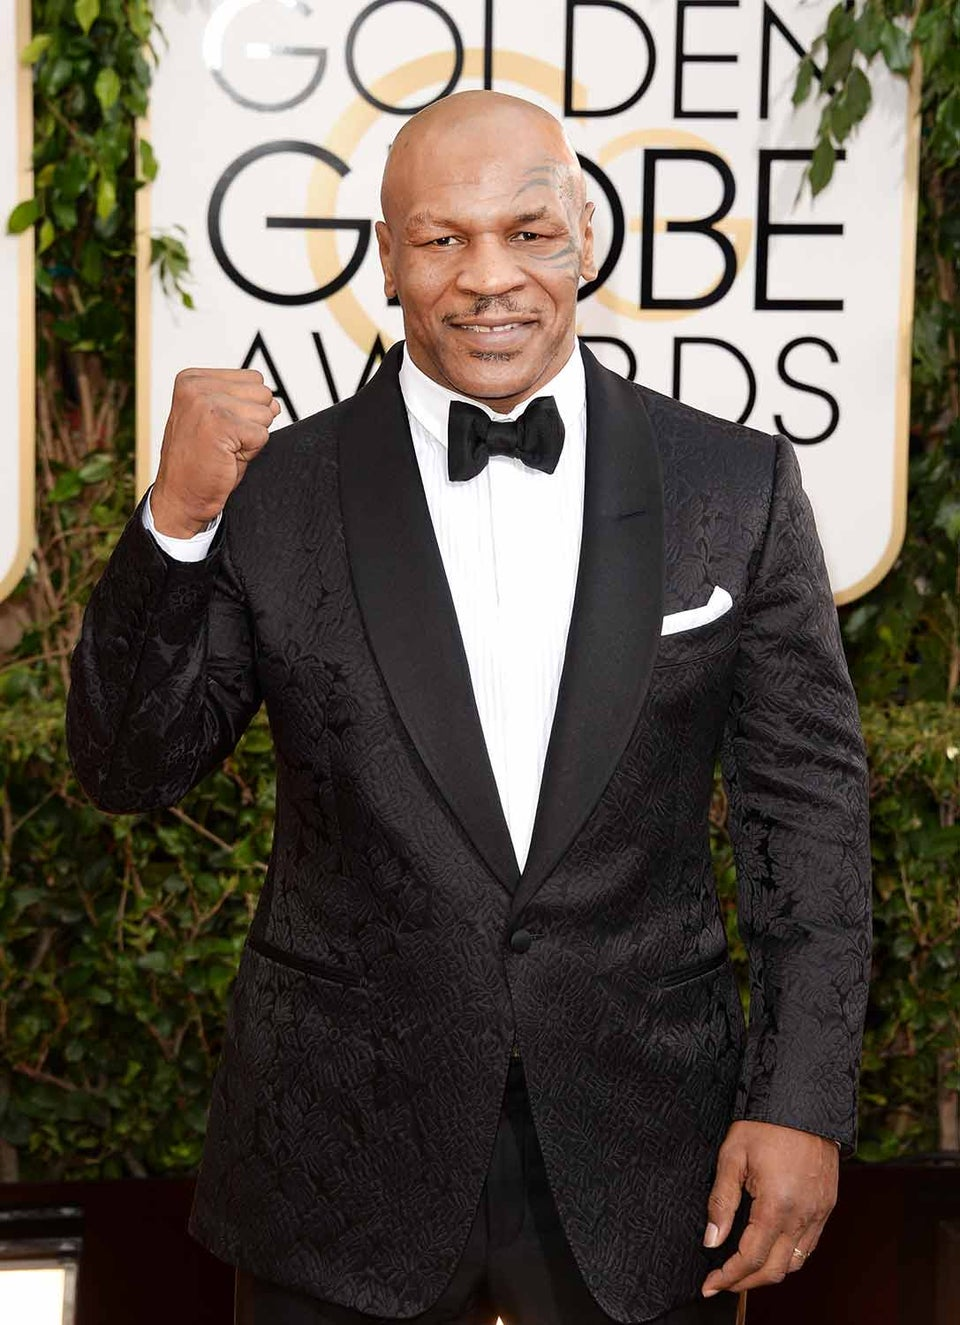 Coffee Talk: Mike Tyson Reveals He Was Sexually Abused As a Child